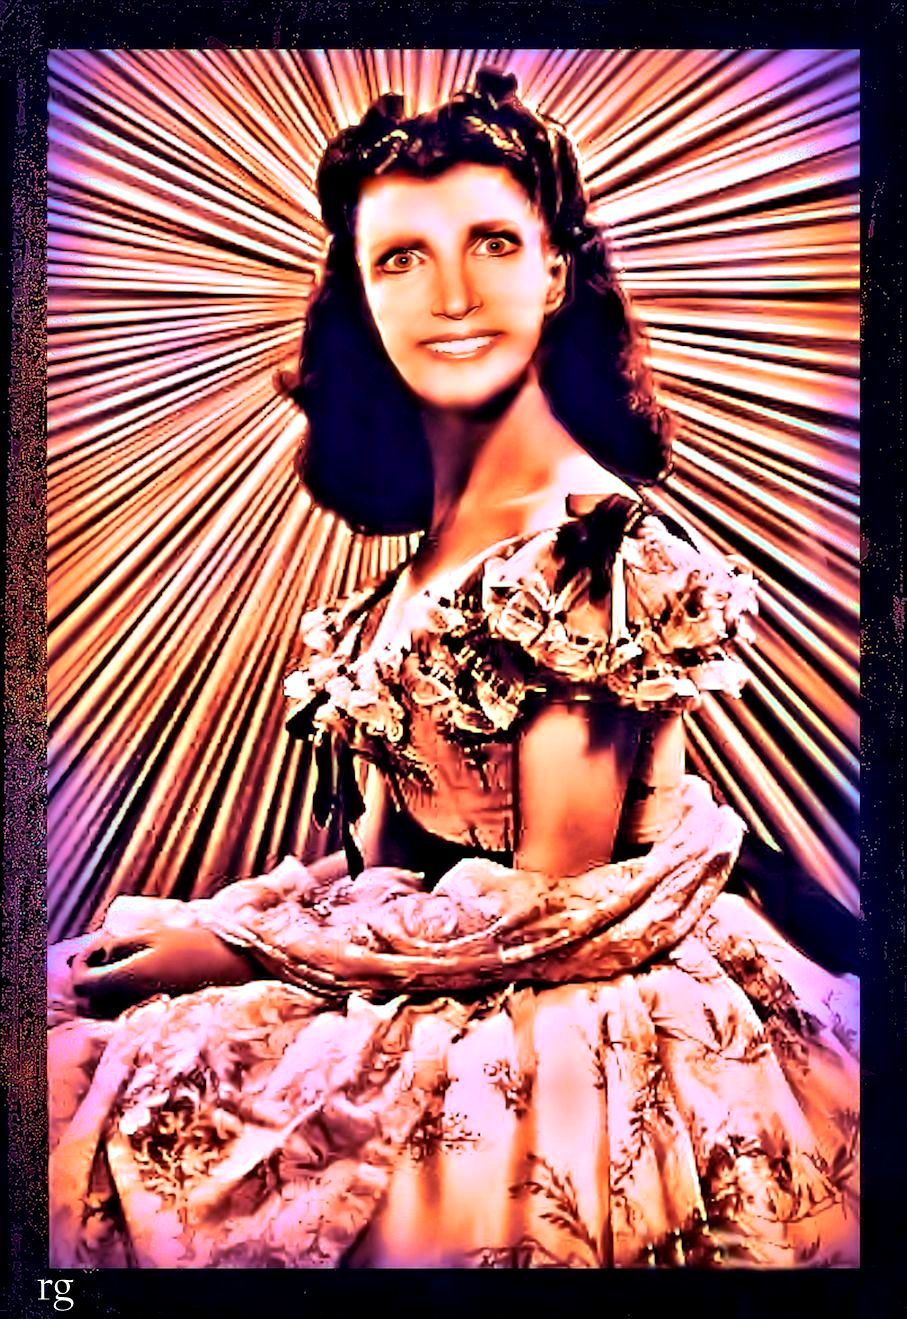 Photo merge of Ann Coulters face on Scarlett O'Hara's body with the caption 'Our Blacks are So Much Better than their Blacks'